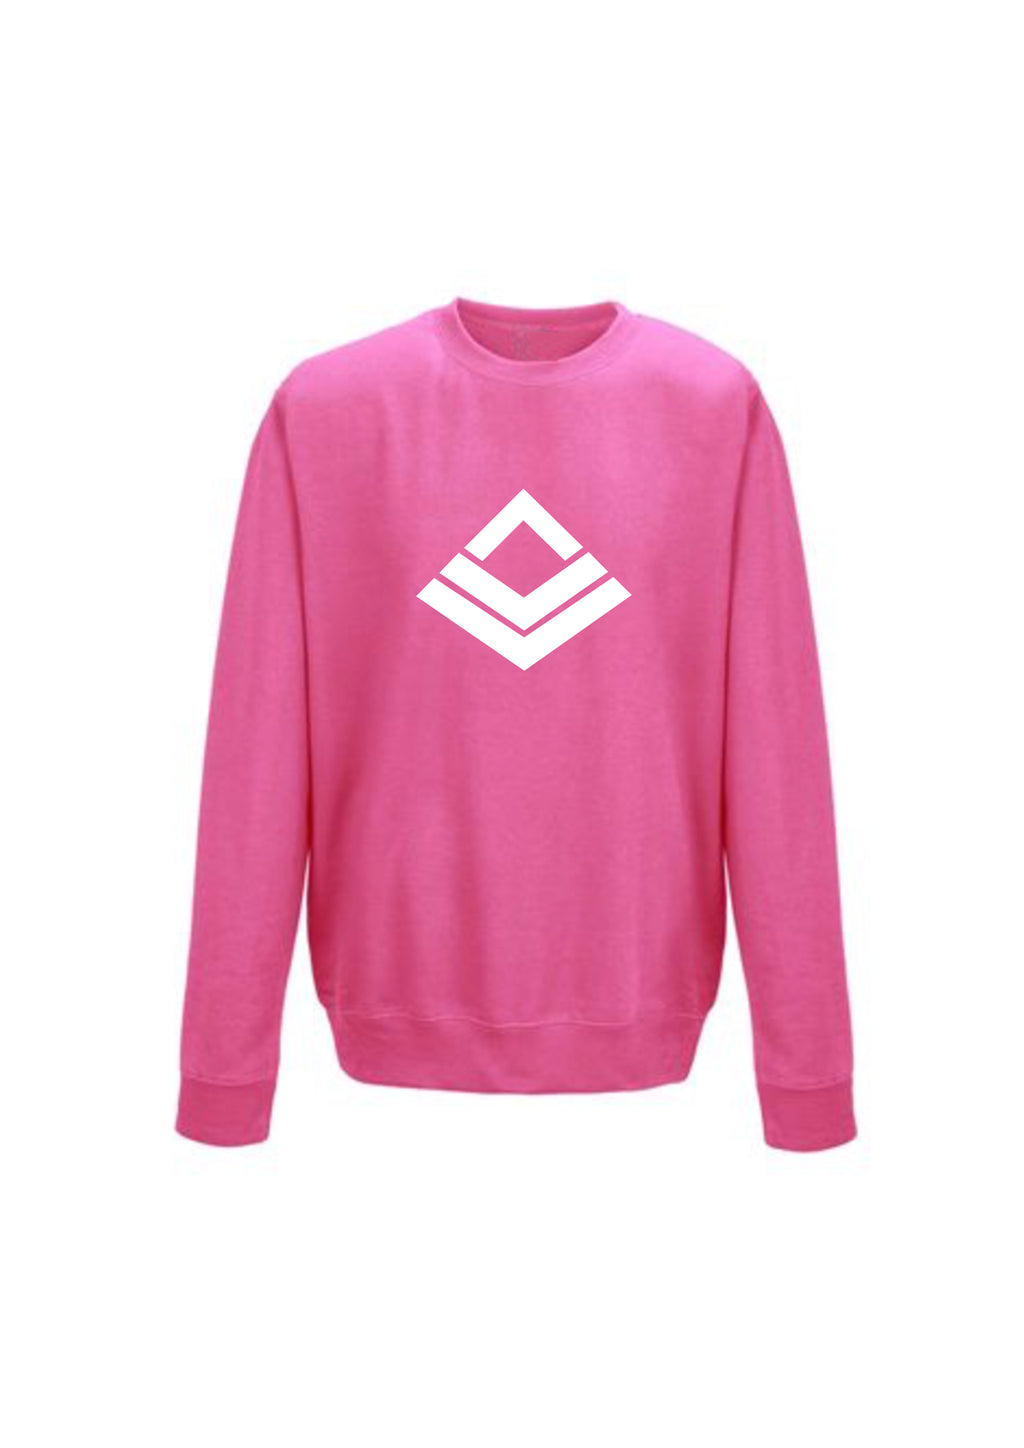 Candy Floss Swaggerlicious White Symbol Sweatshirt - swaggerlicious-clothing.com